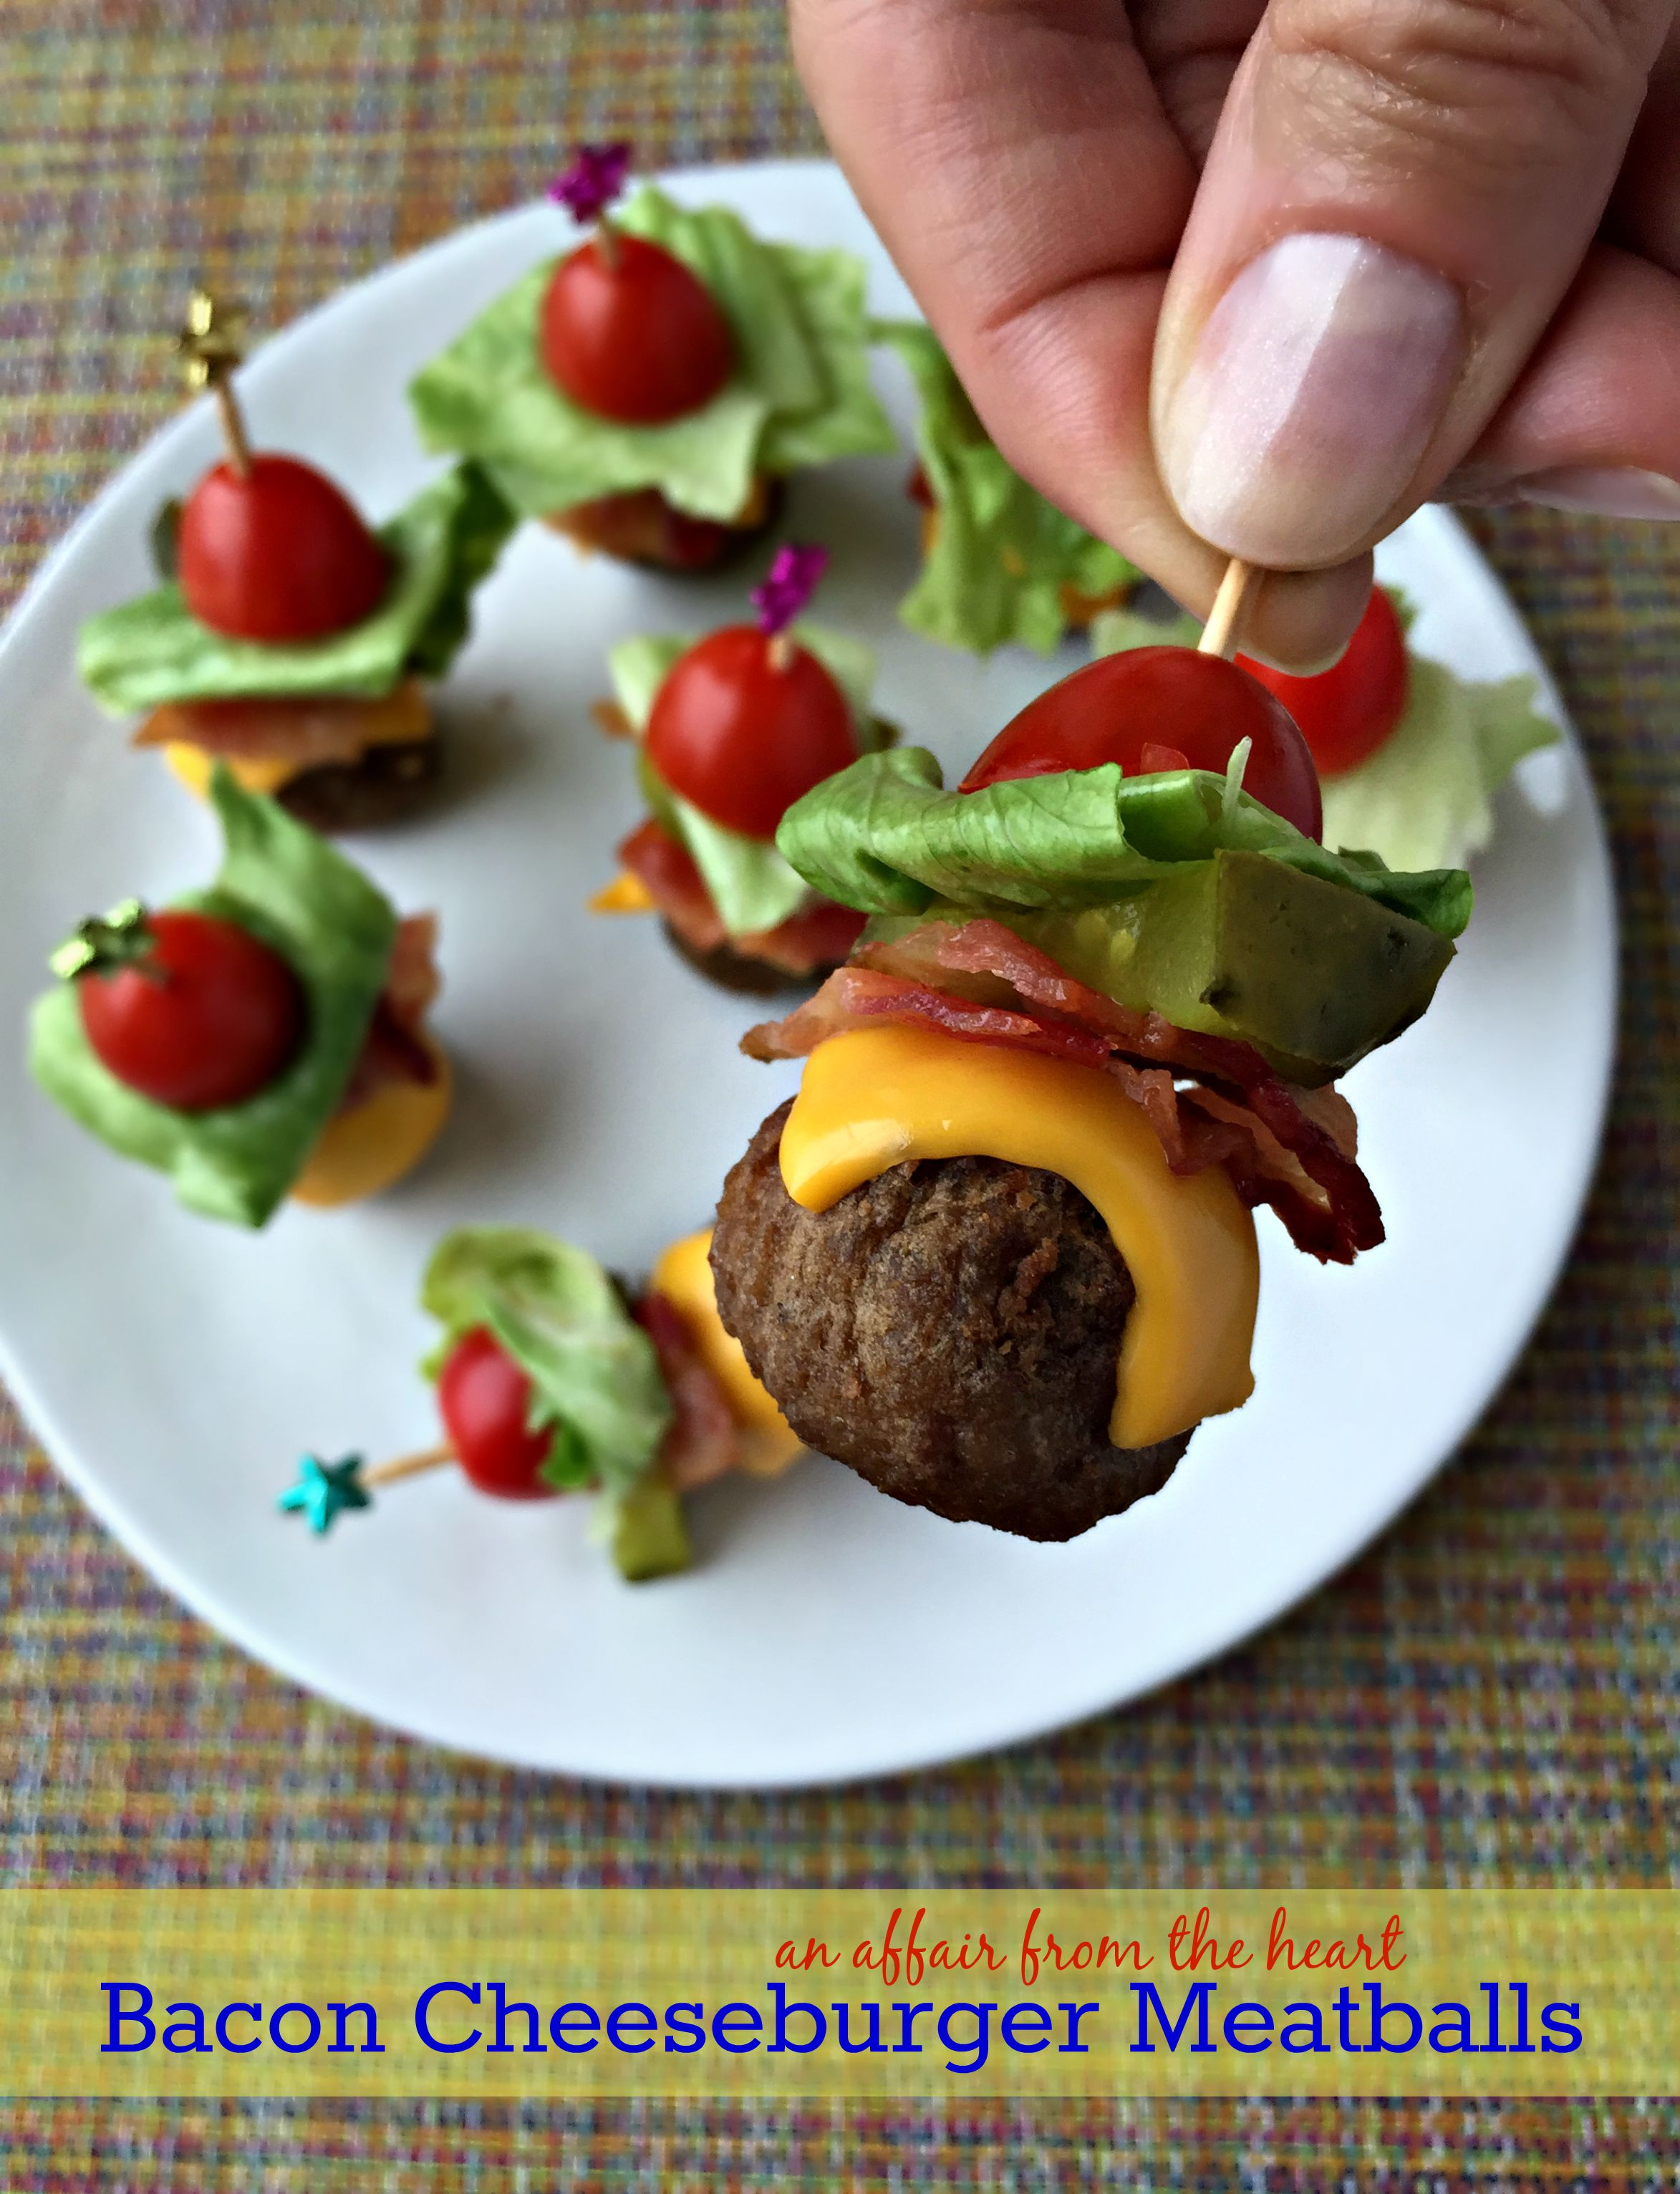 Bacon Cheeseburger Meatballs